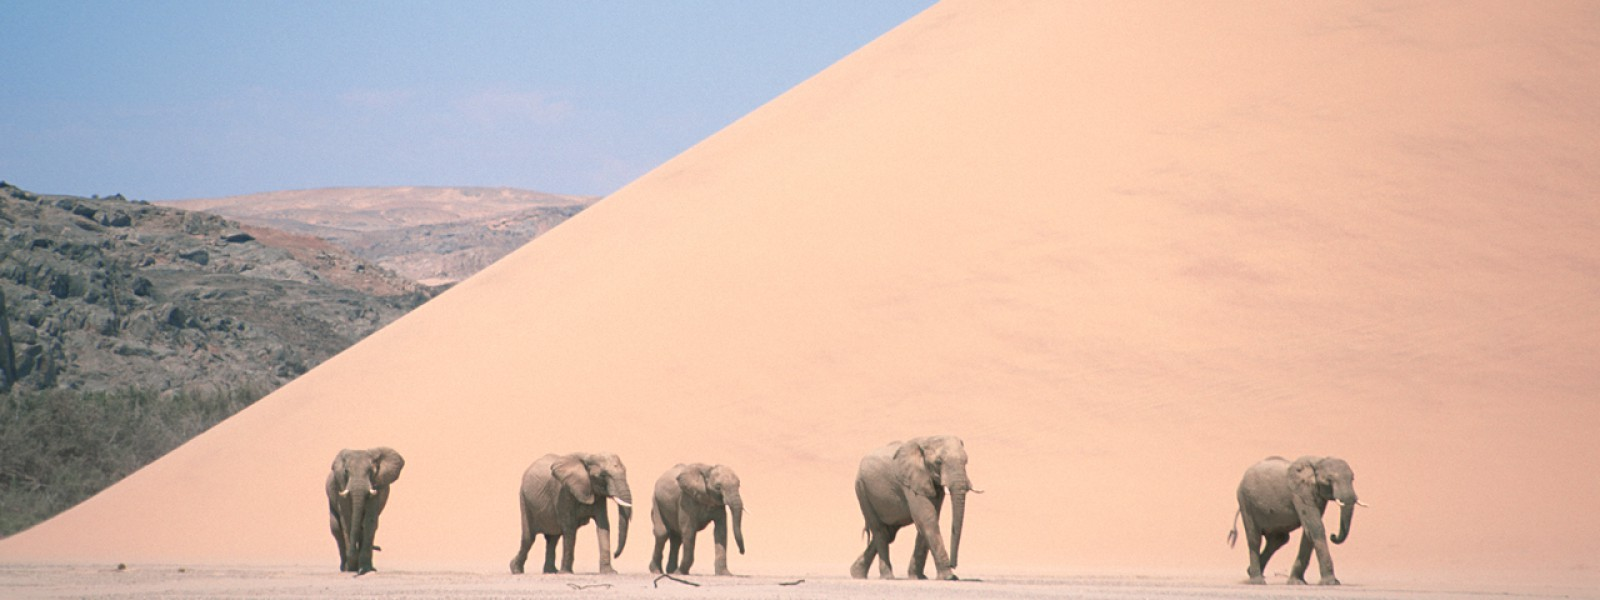 planetearth_photo_captiongallery_elephant_web_01